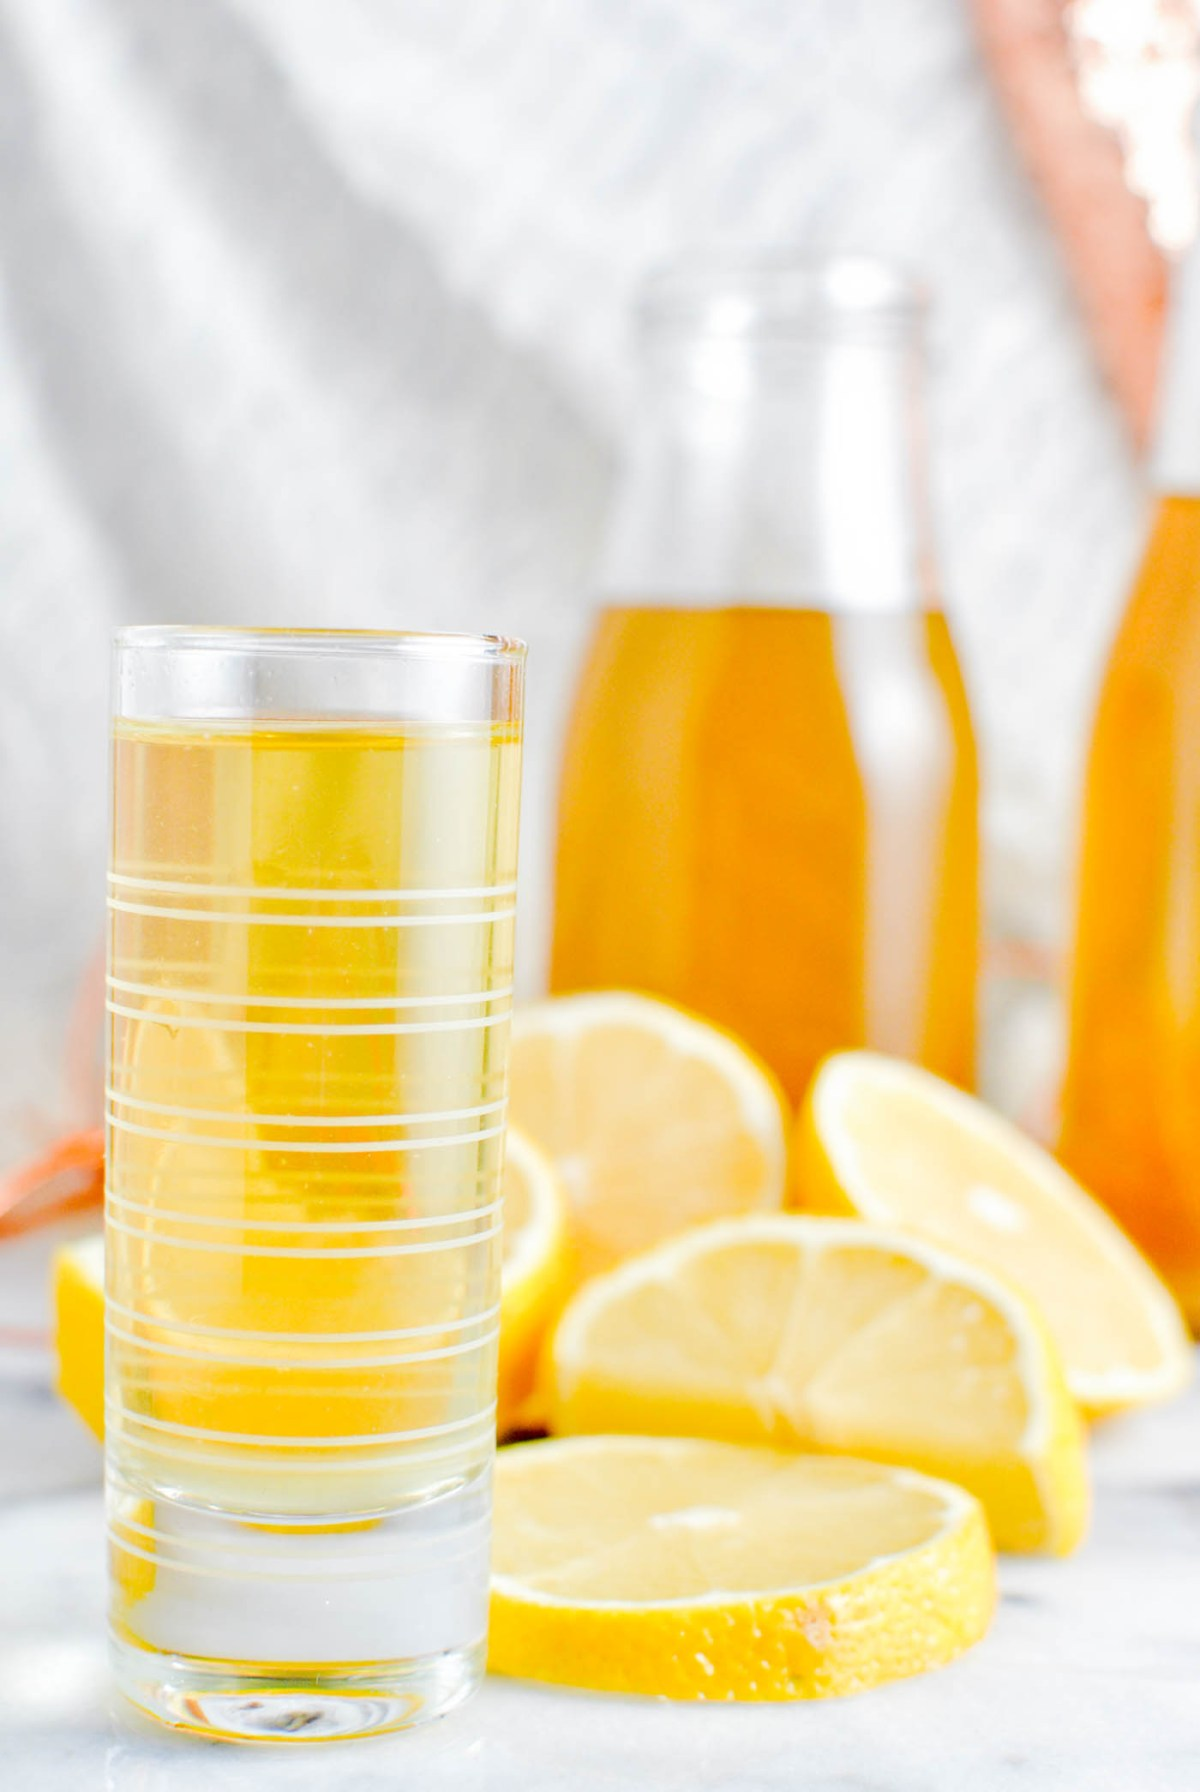 homemade limoncello! YAS. you should make this for new years! its super easy and so much better when you make it yourself   thepikeplacekitchen.com